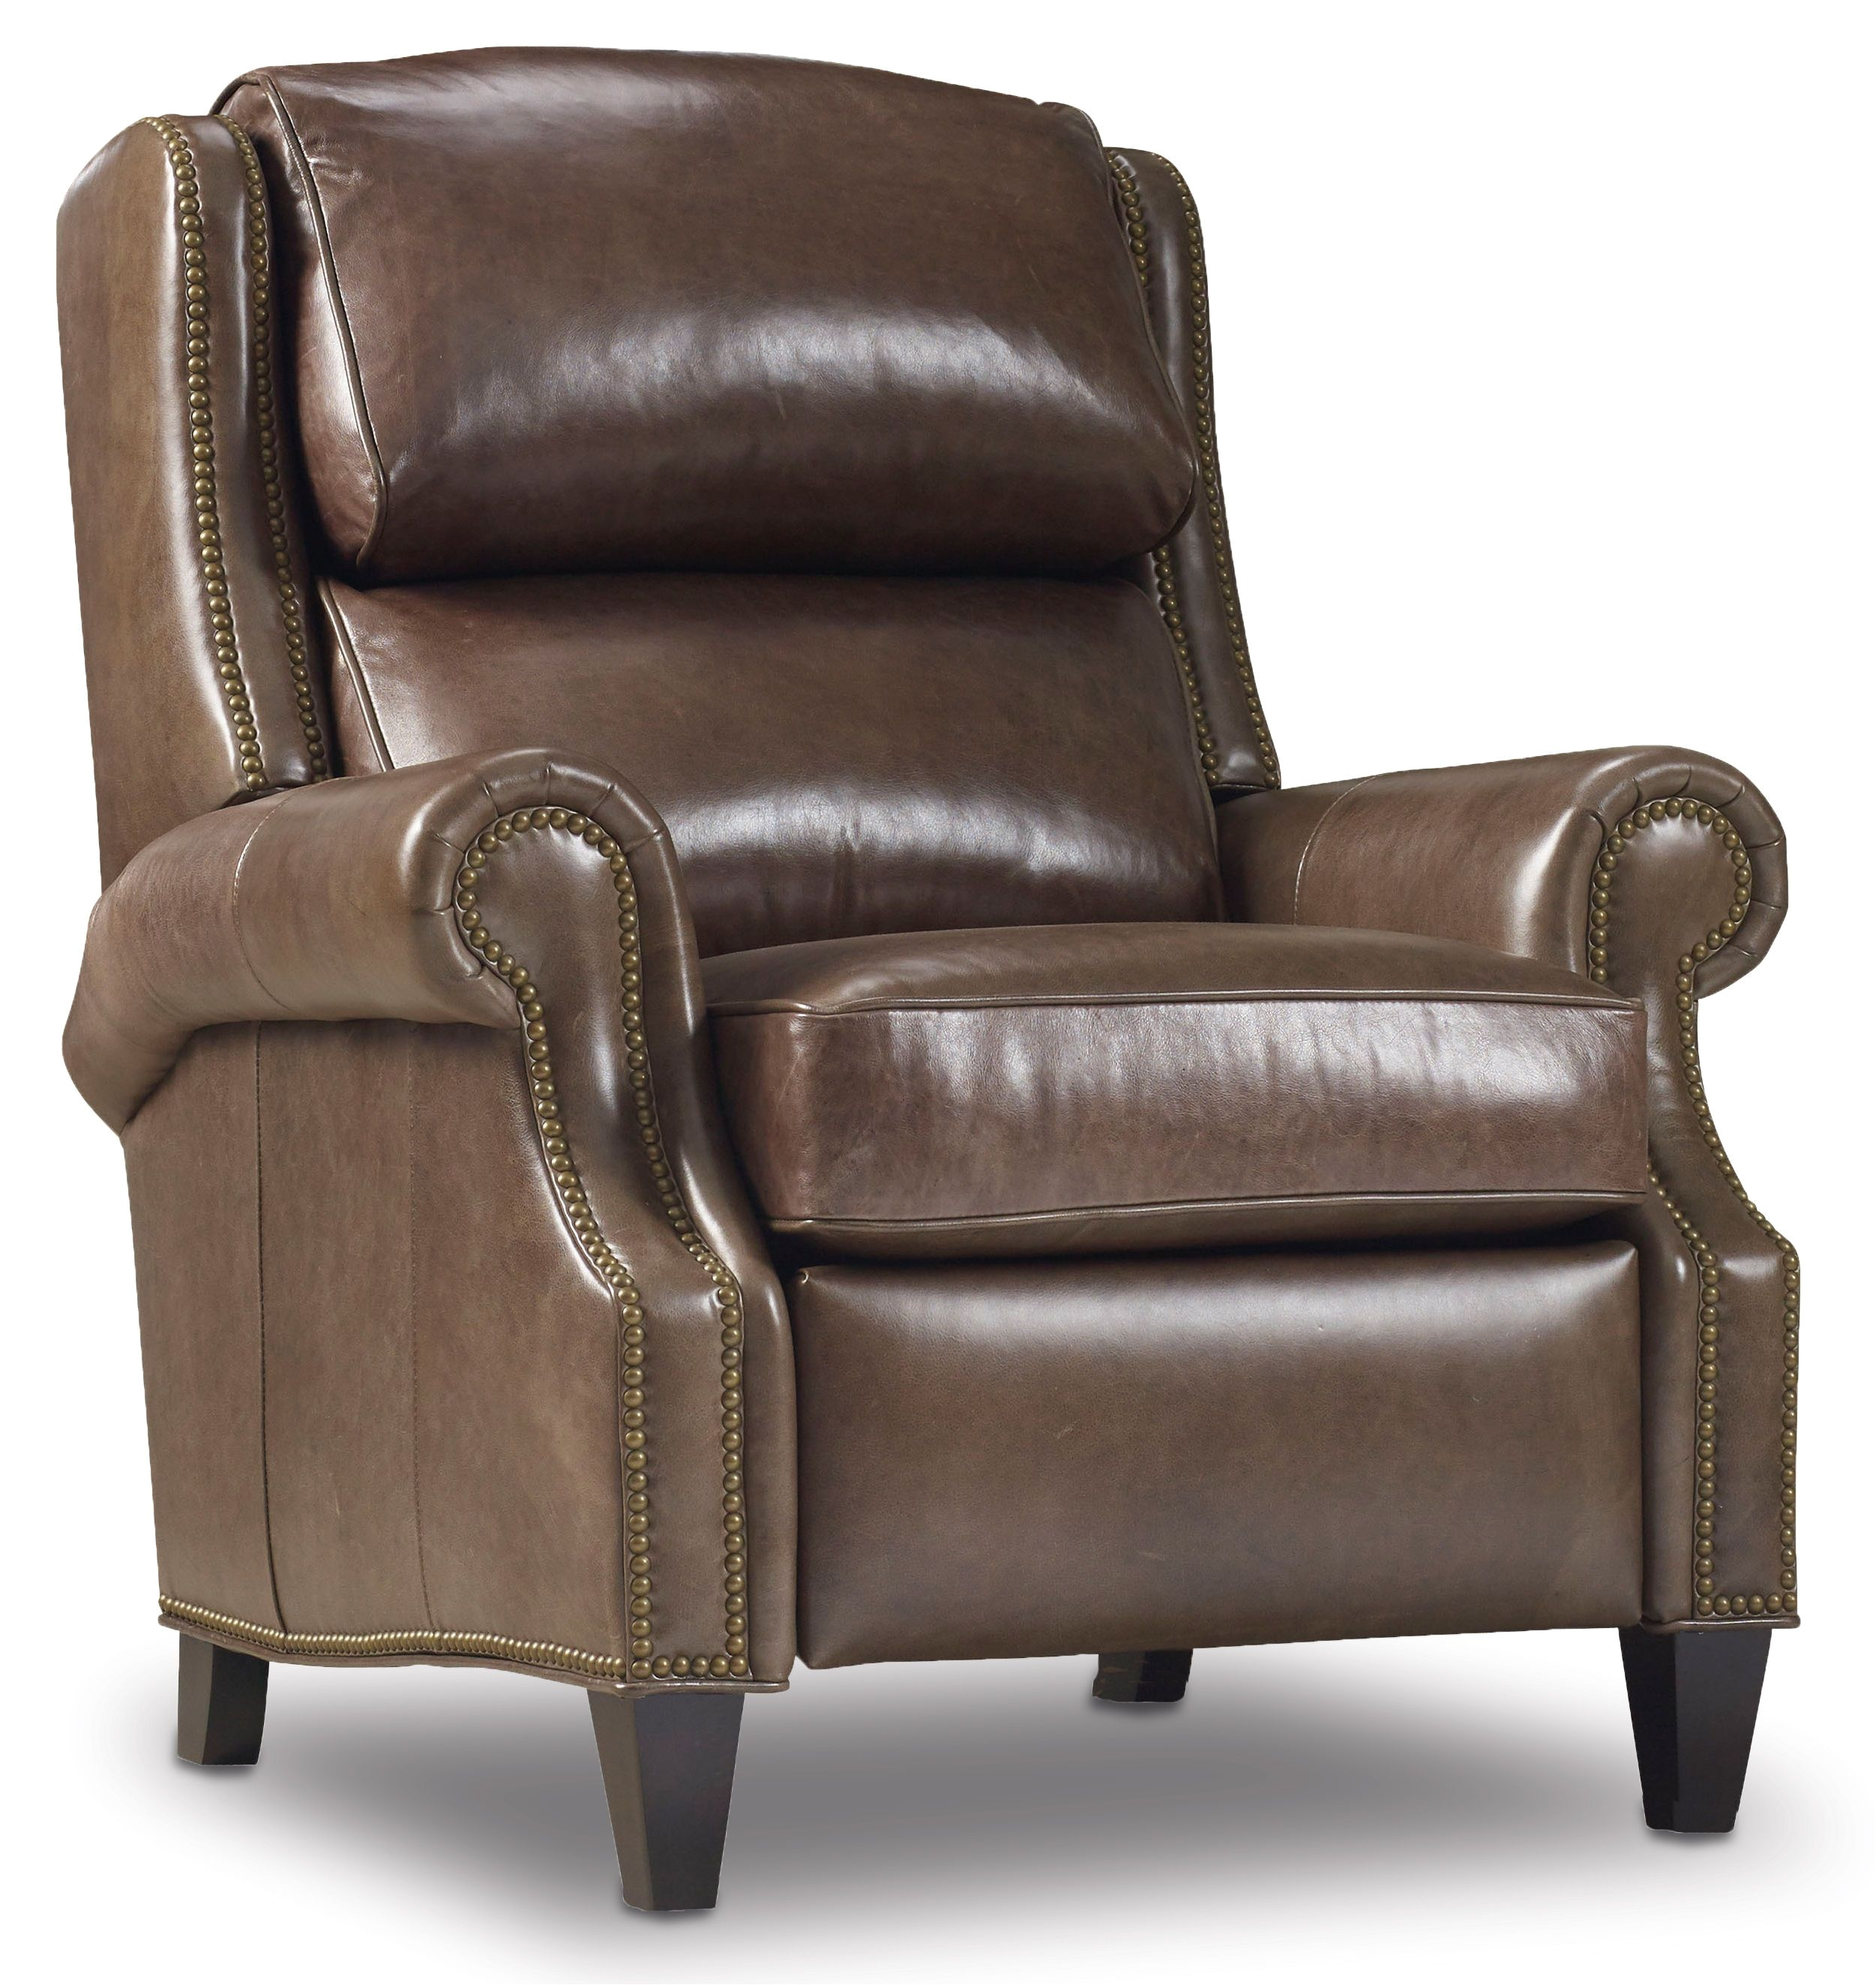 Best Rated Leather Recliner Chairs Bradington Young Huss Reclining Chair 3020 Have A Seat Pinterest